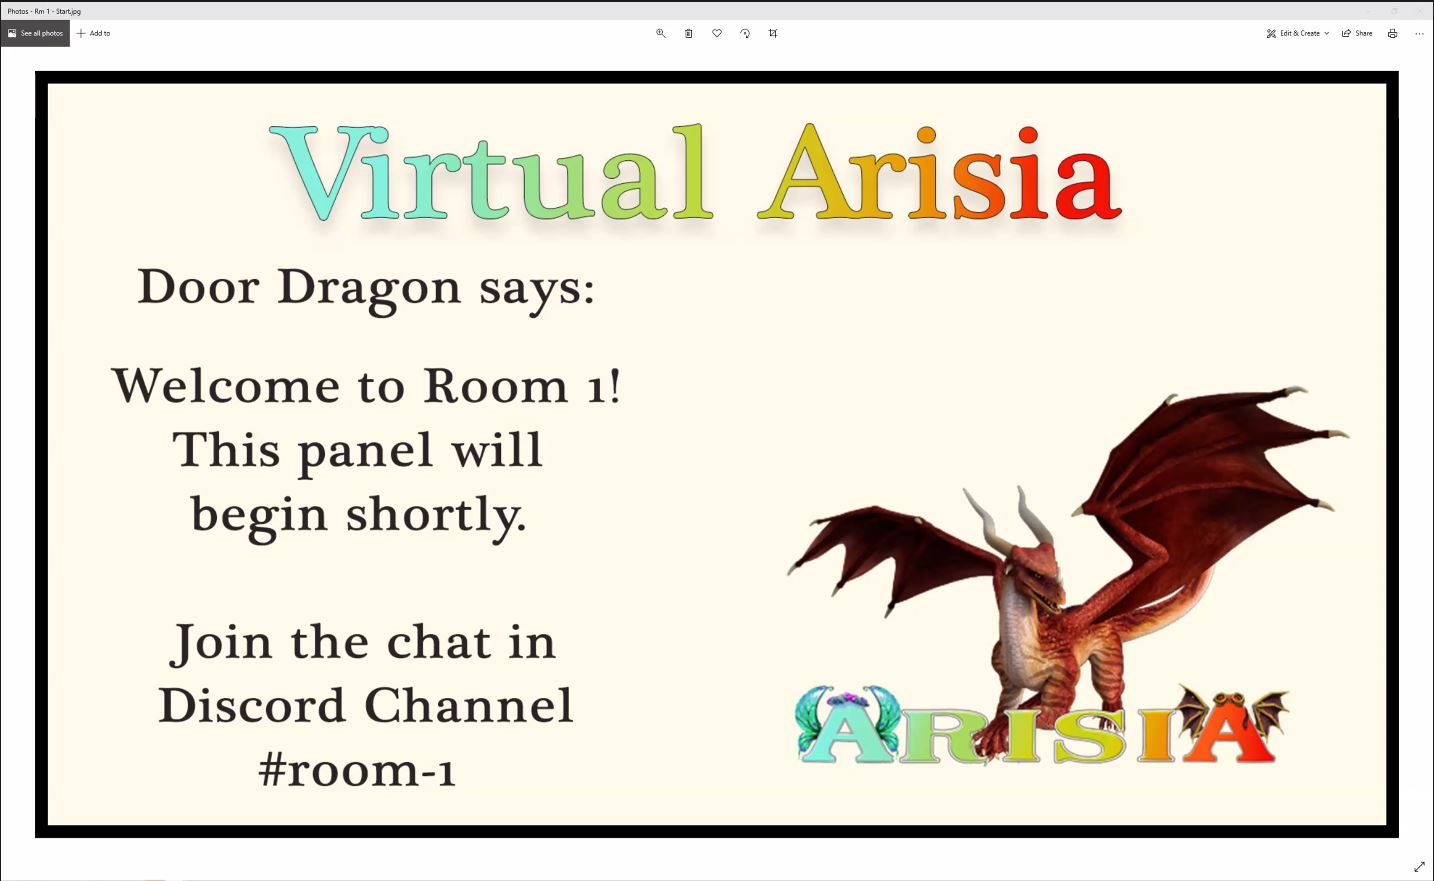 Screenshot from Zoom. Heading is in big rainbow letters: 'Virtual Arisia' below is a picture of Dragon and text 'Door Dragon says: Welcome to Room 1! This panel will begin shortly. Join the chat in Discord Channel #room-1'.